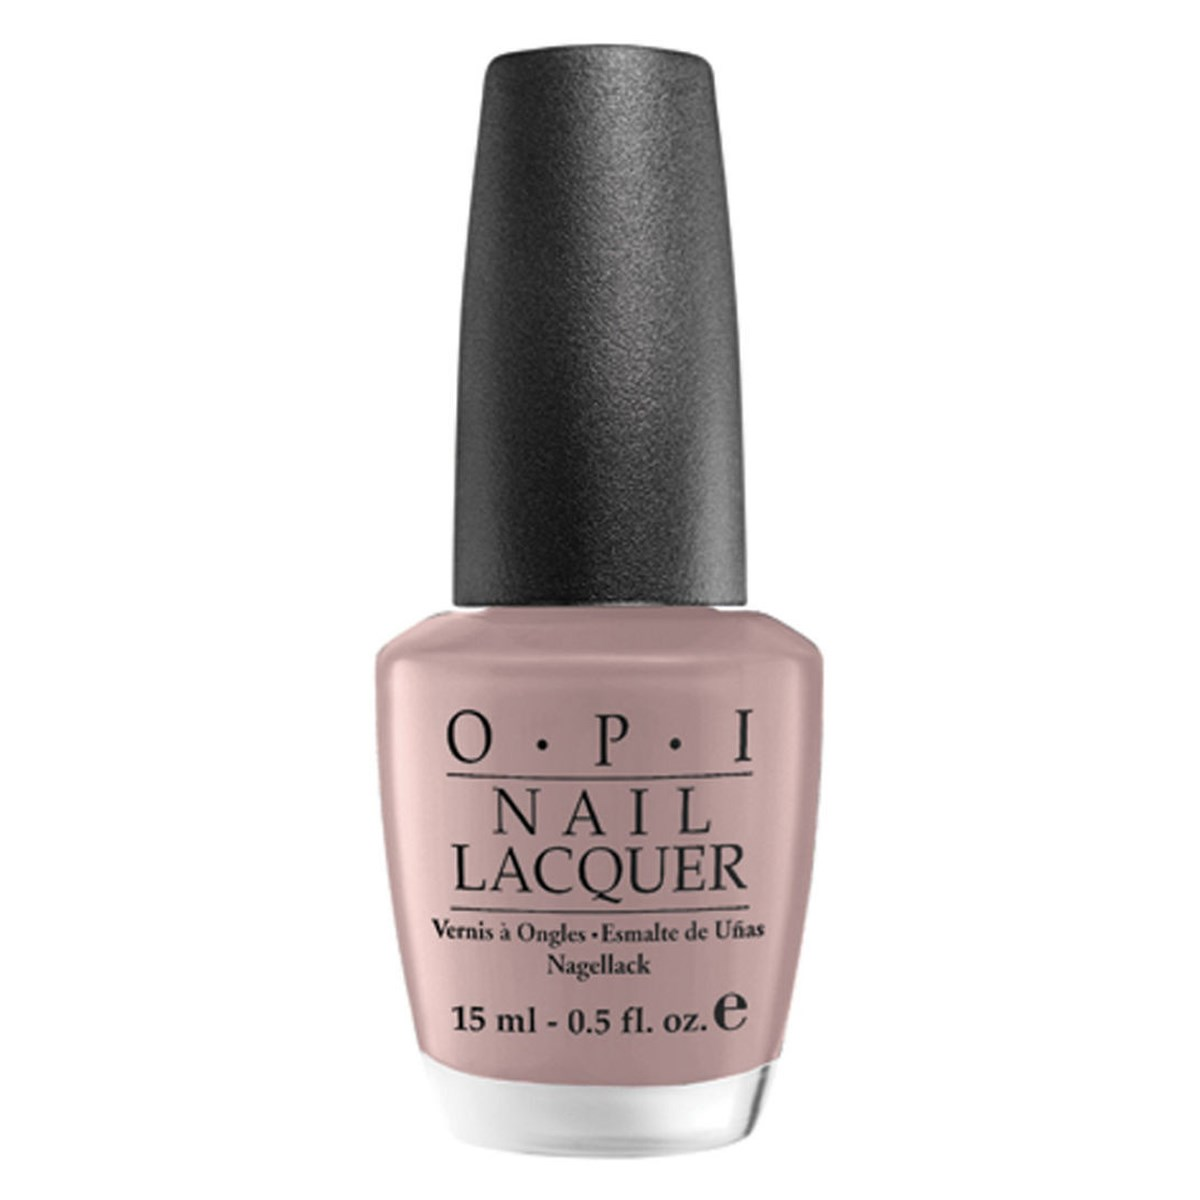 OPI Classic Nail Lacquer Tickle My France-y